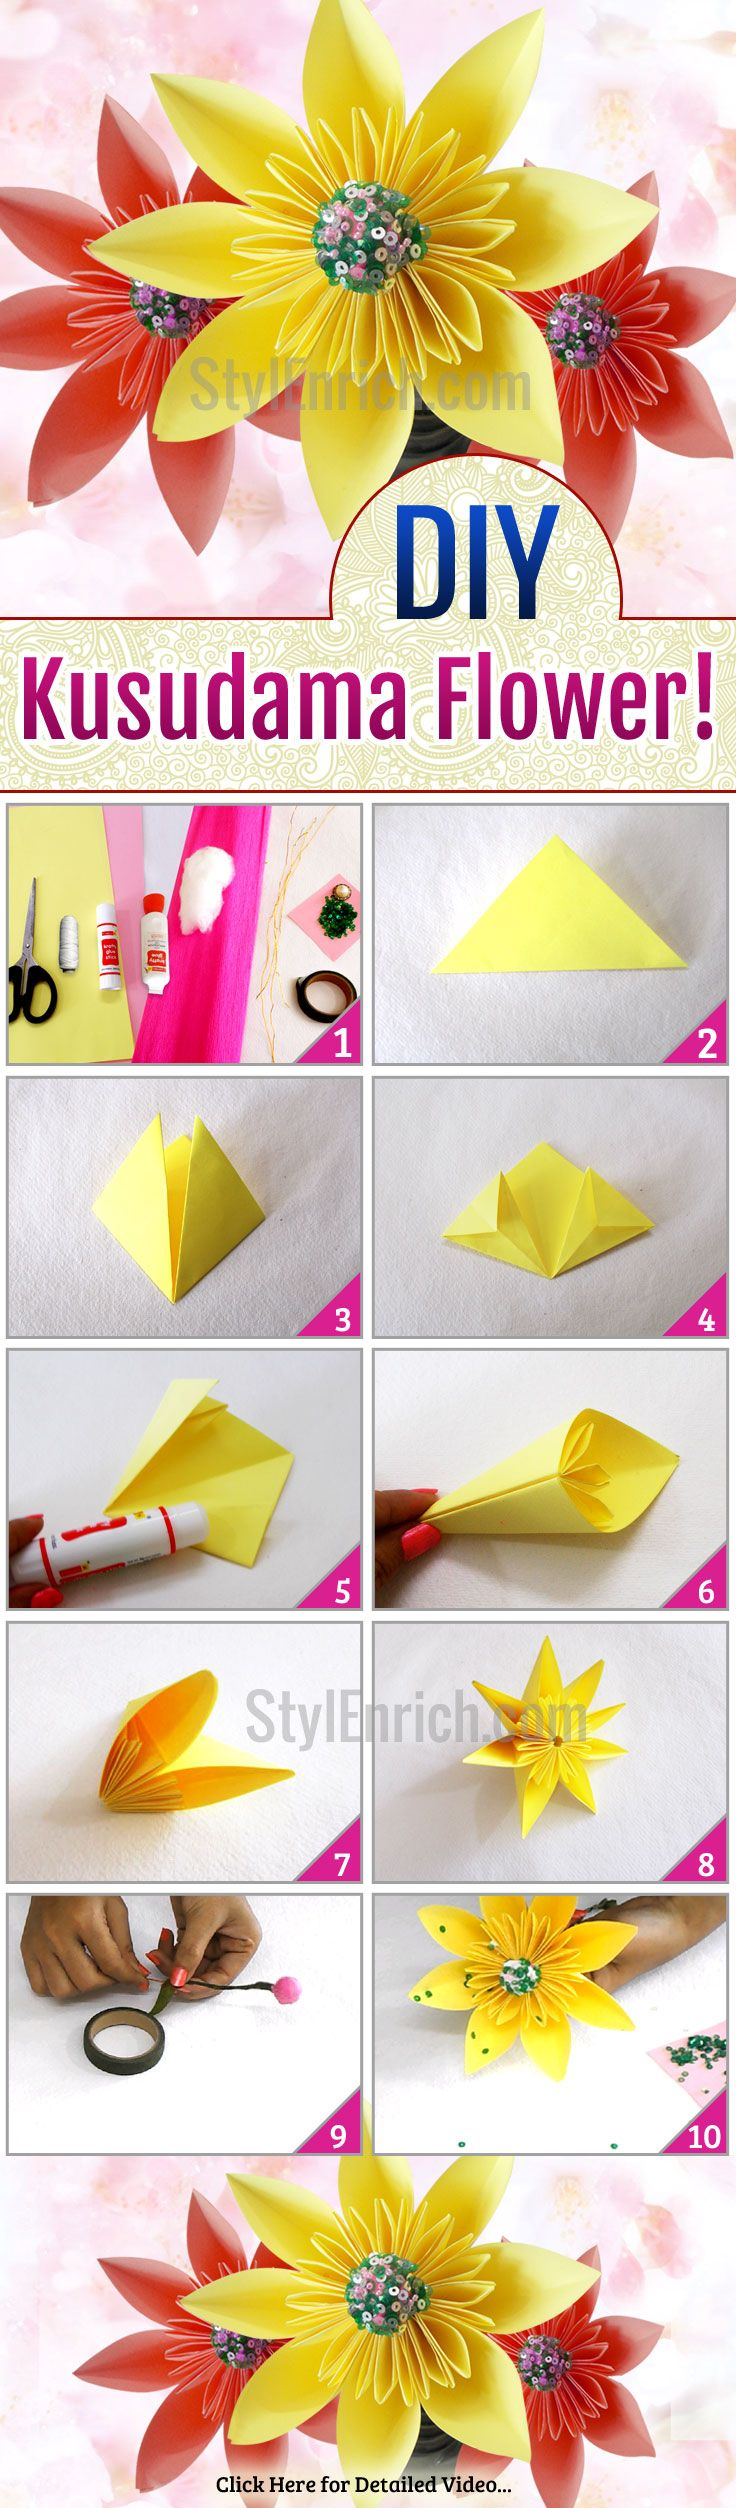 How to make origami kusudama flower step by step - Kadudama Origami Flower Want To Know How To Make Beautiful Super Easy Here Are The Step By Step Instructions To Understand How To Make Easy Paper Flowers